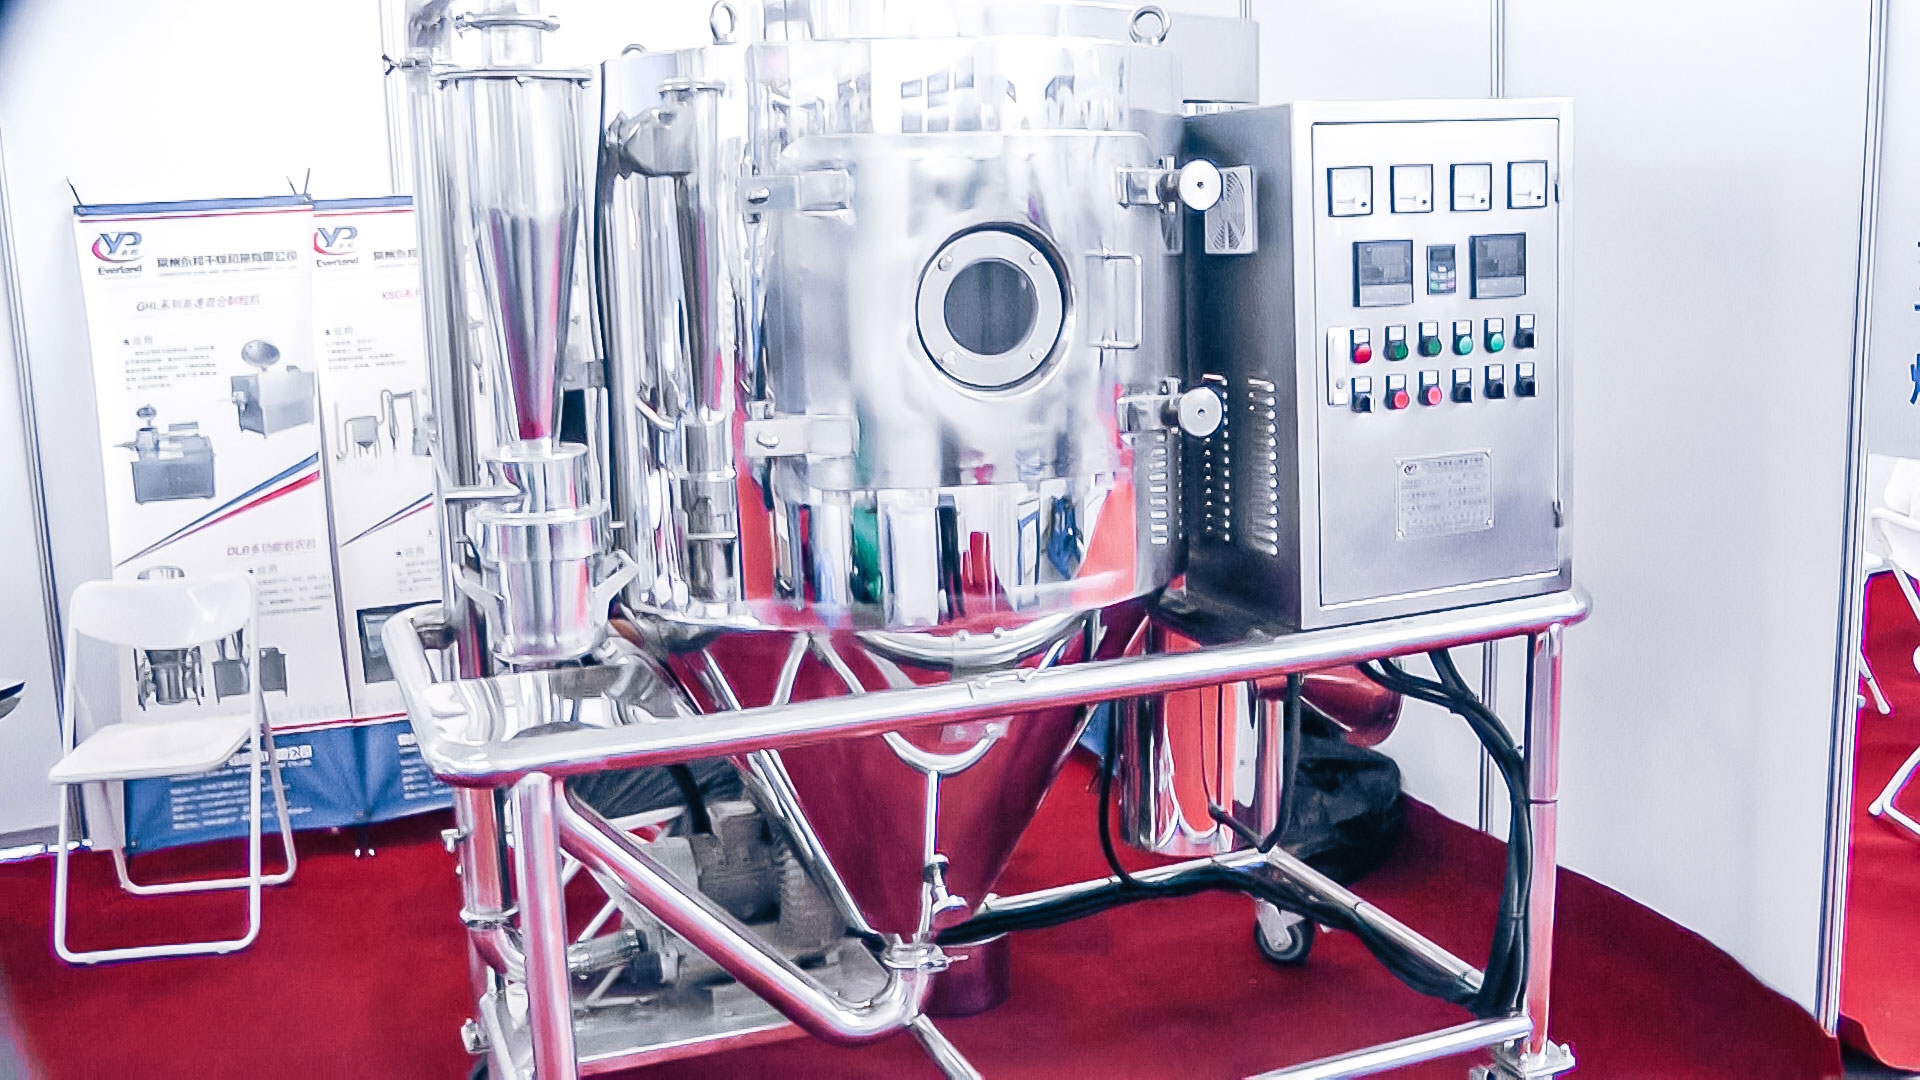 Automatic fluidized bed drying and granulation equipment in pharmaceutical production